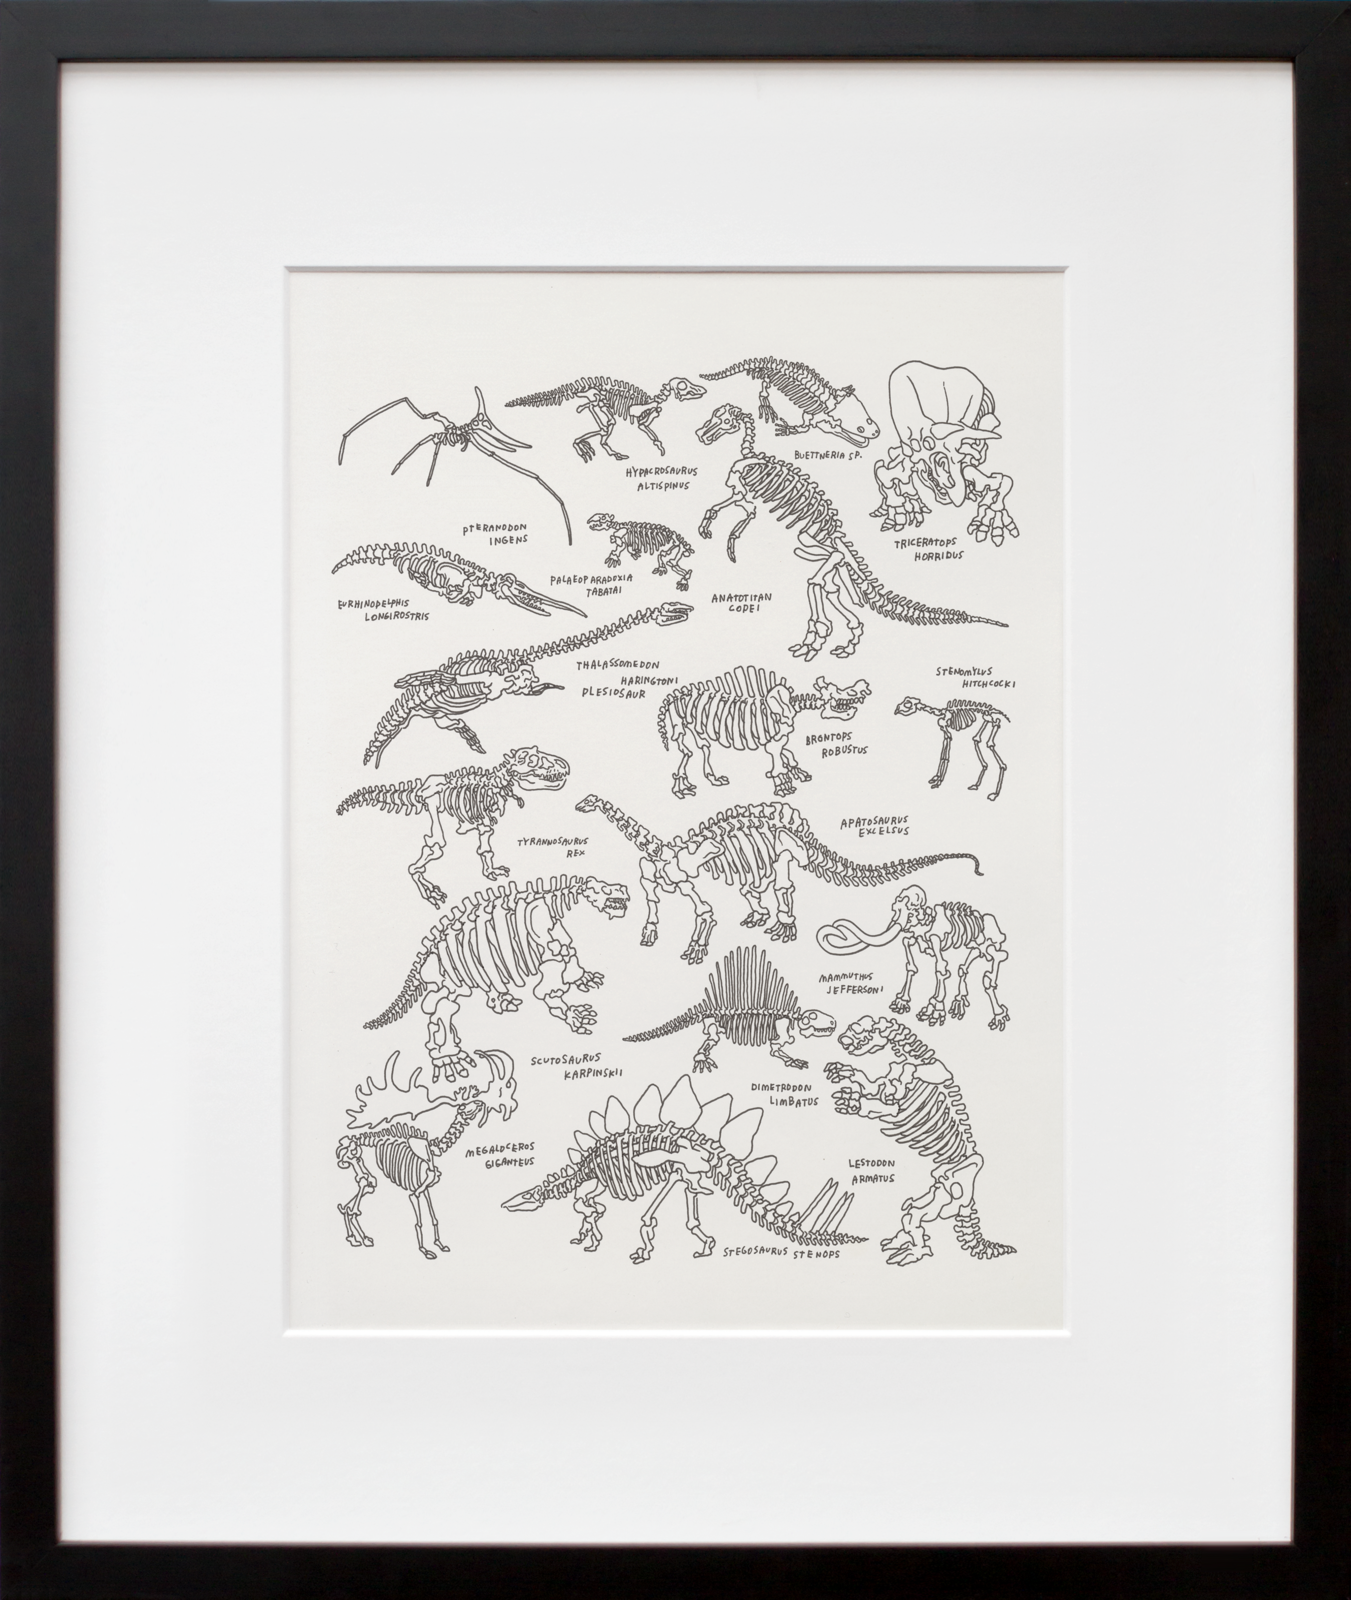 Photo 12 of 13 in 12 Playful Pieces of Art to Instantly Liven Up Your Kid's Room